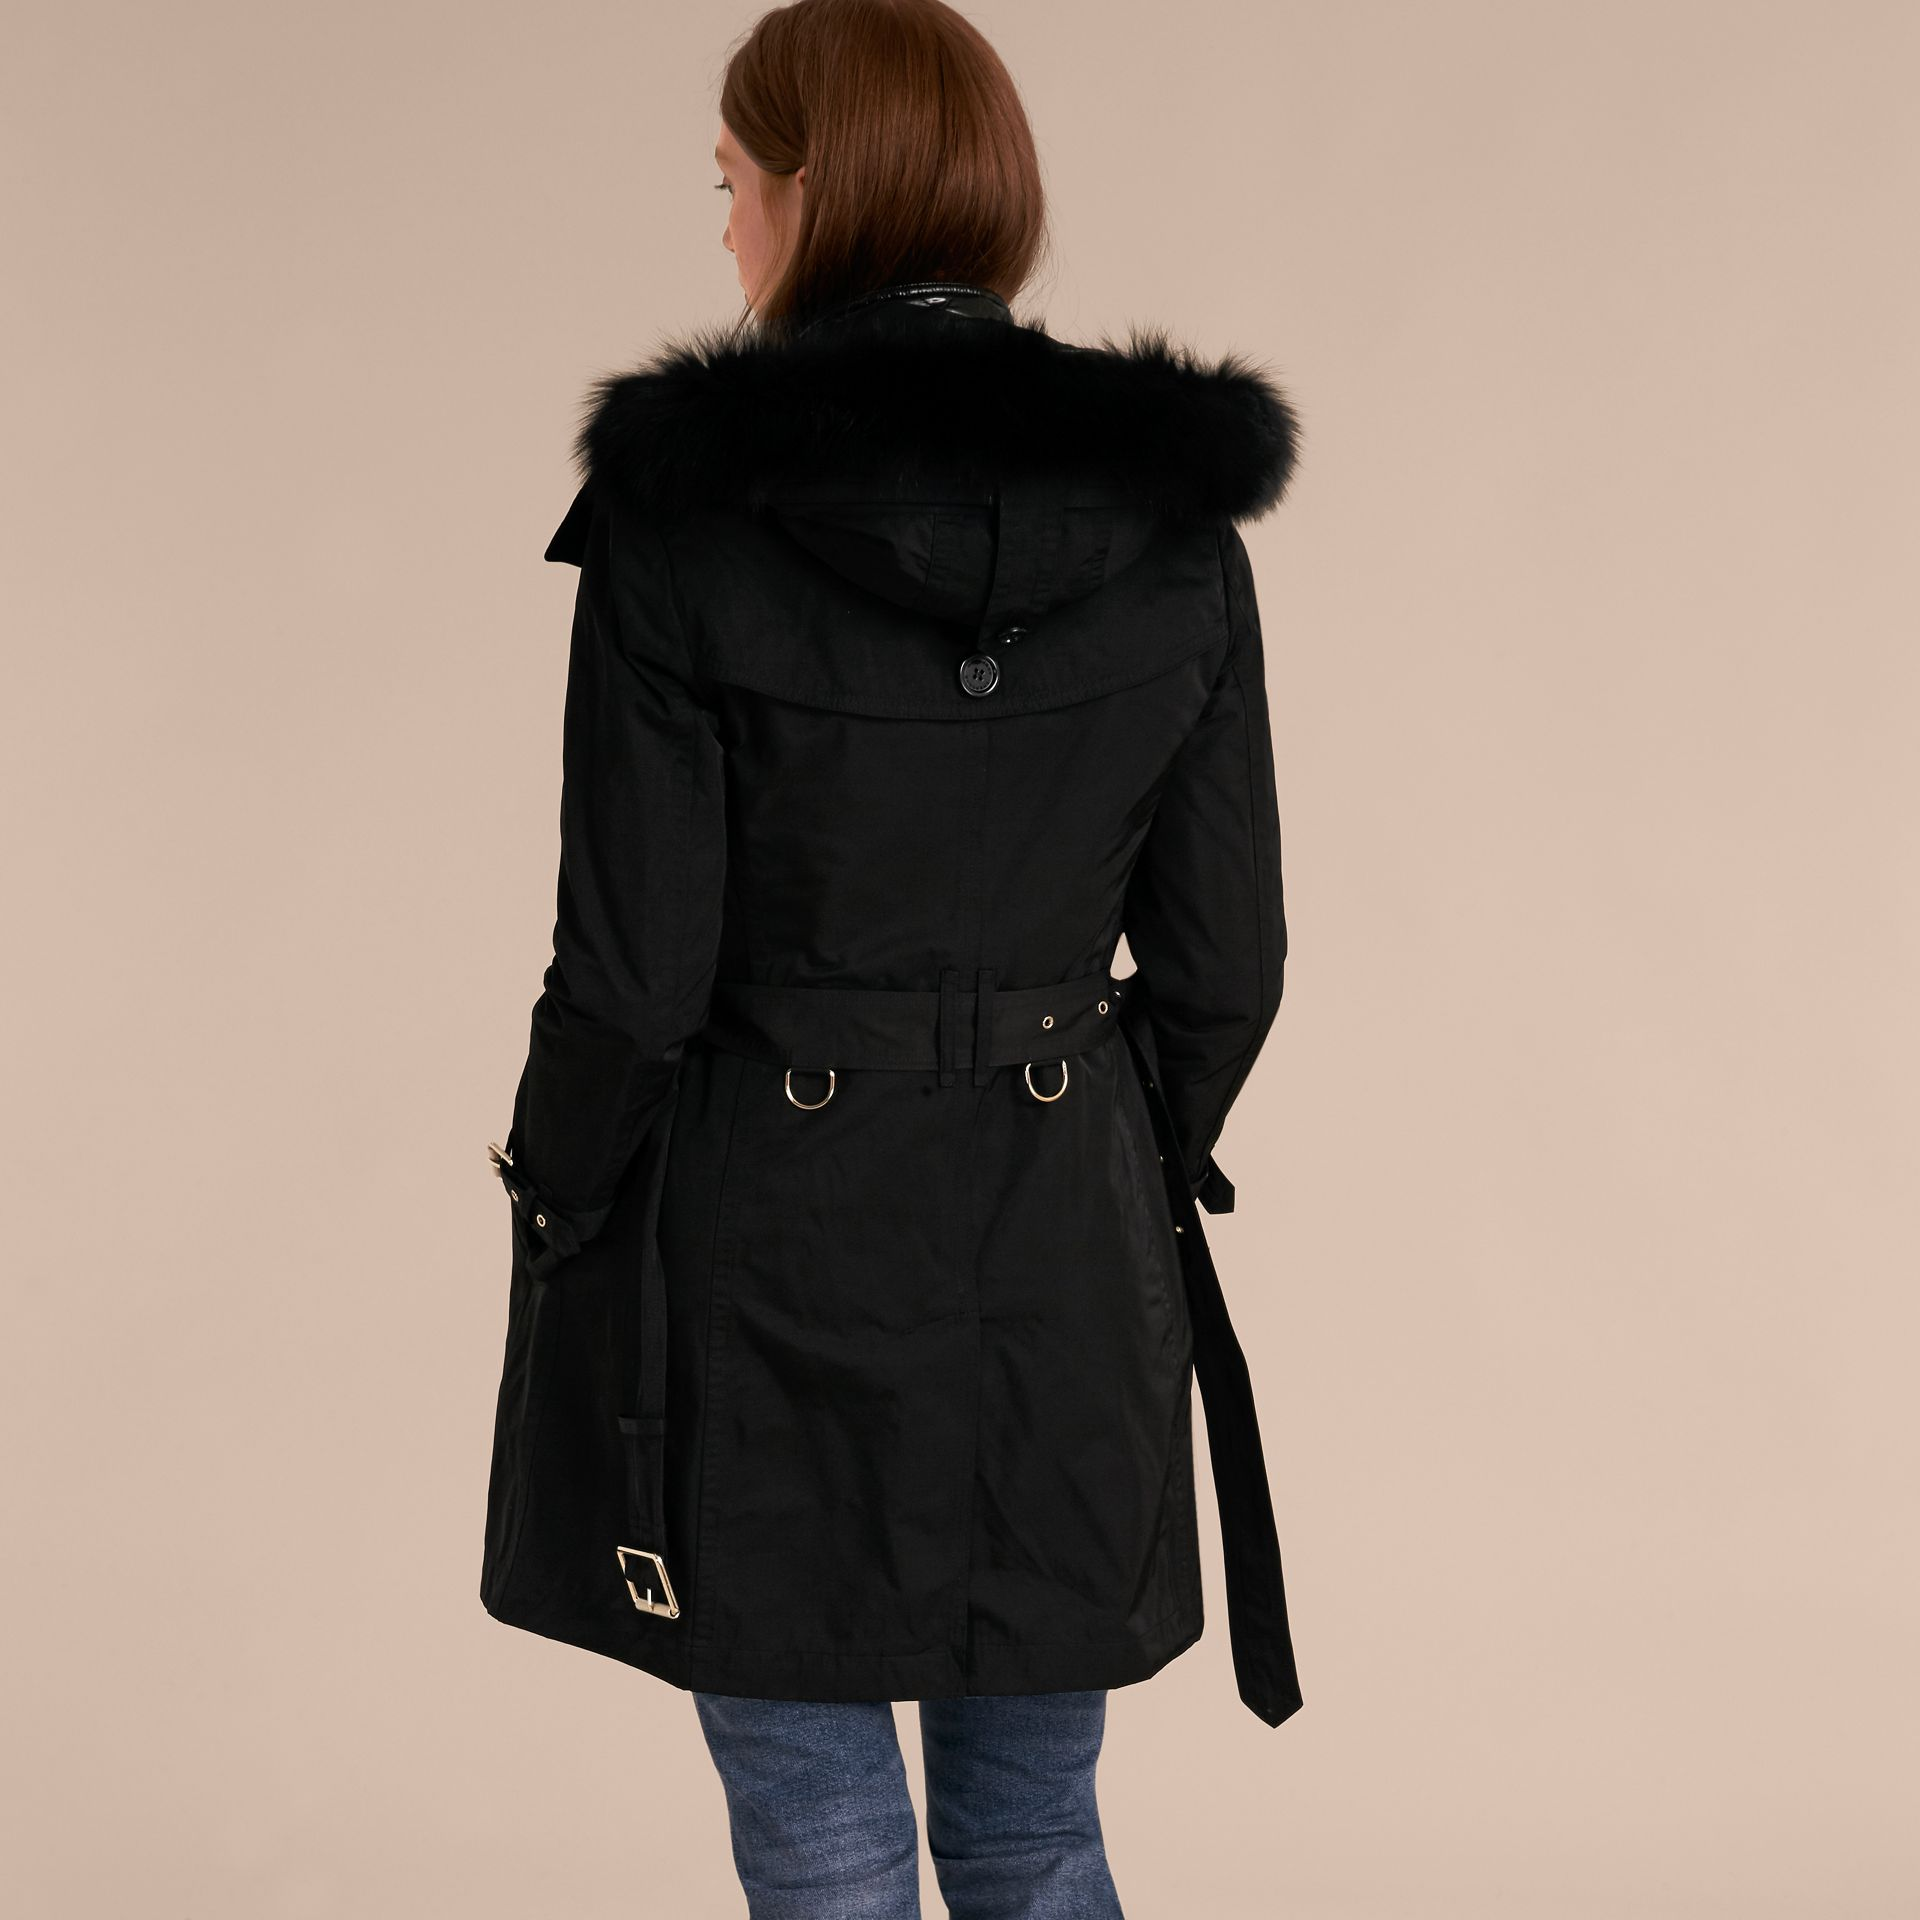 Fur-trimmed Hood Trench Coat with Detachable Gilet Black - gallery image 7